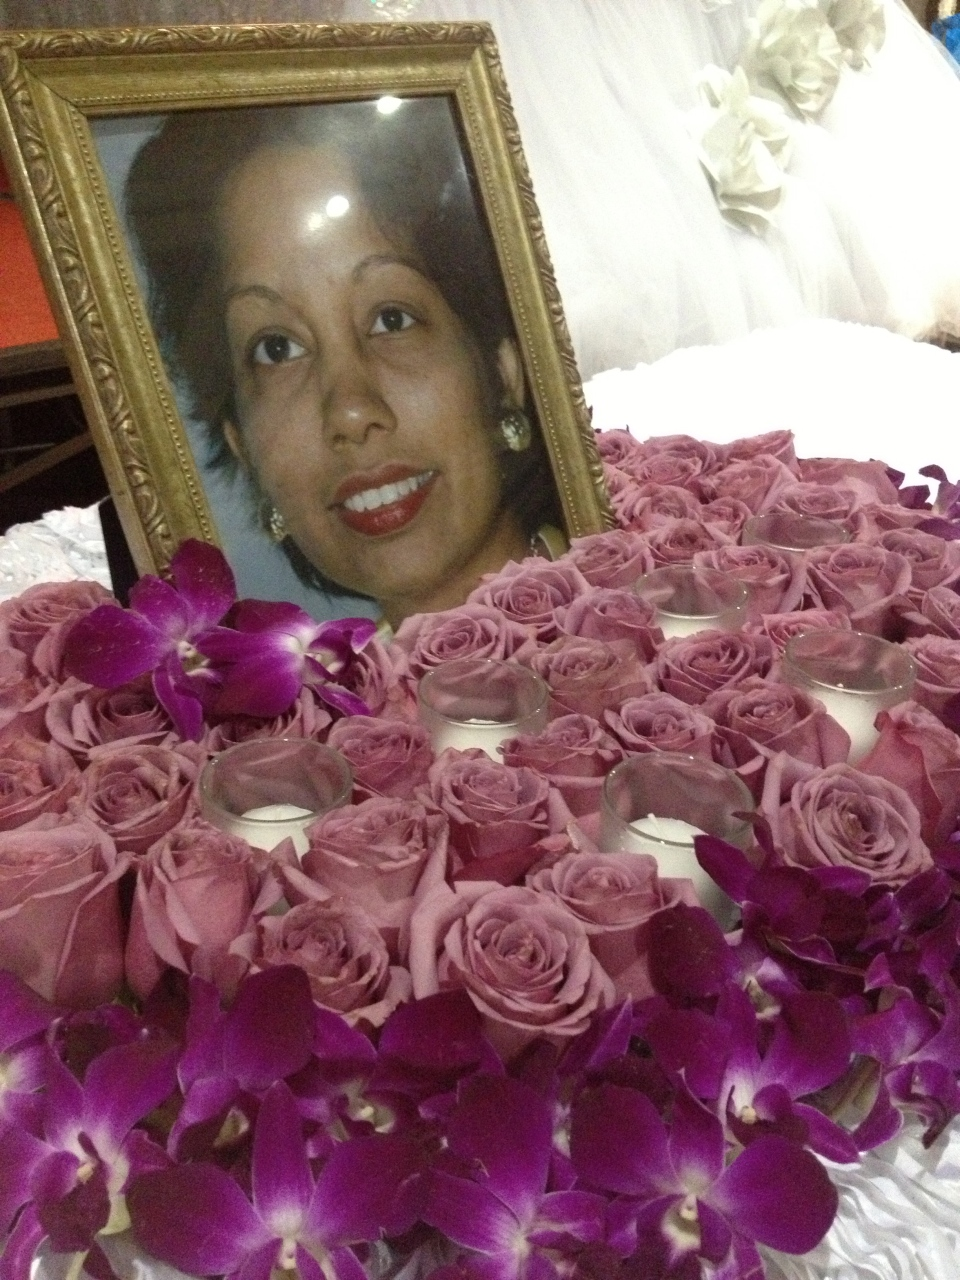 A bed of purple roses and dendrobium orchids for the memorial table.